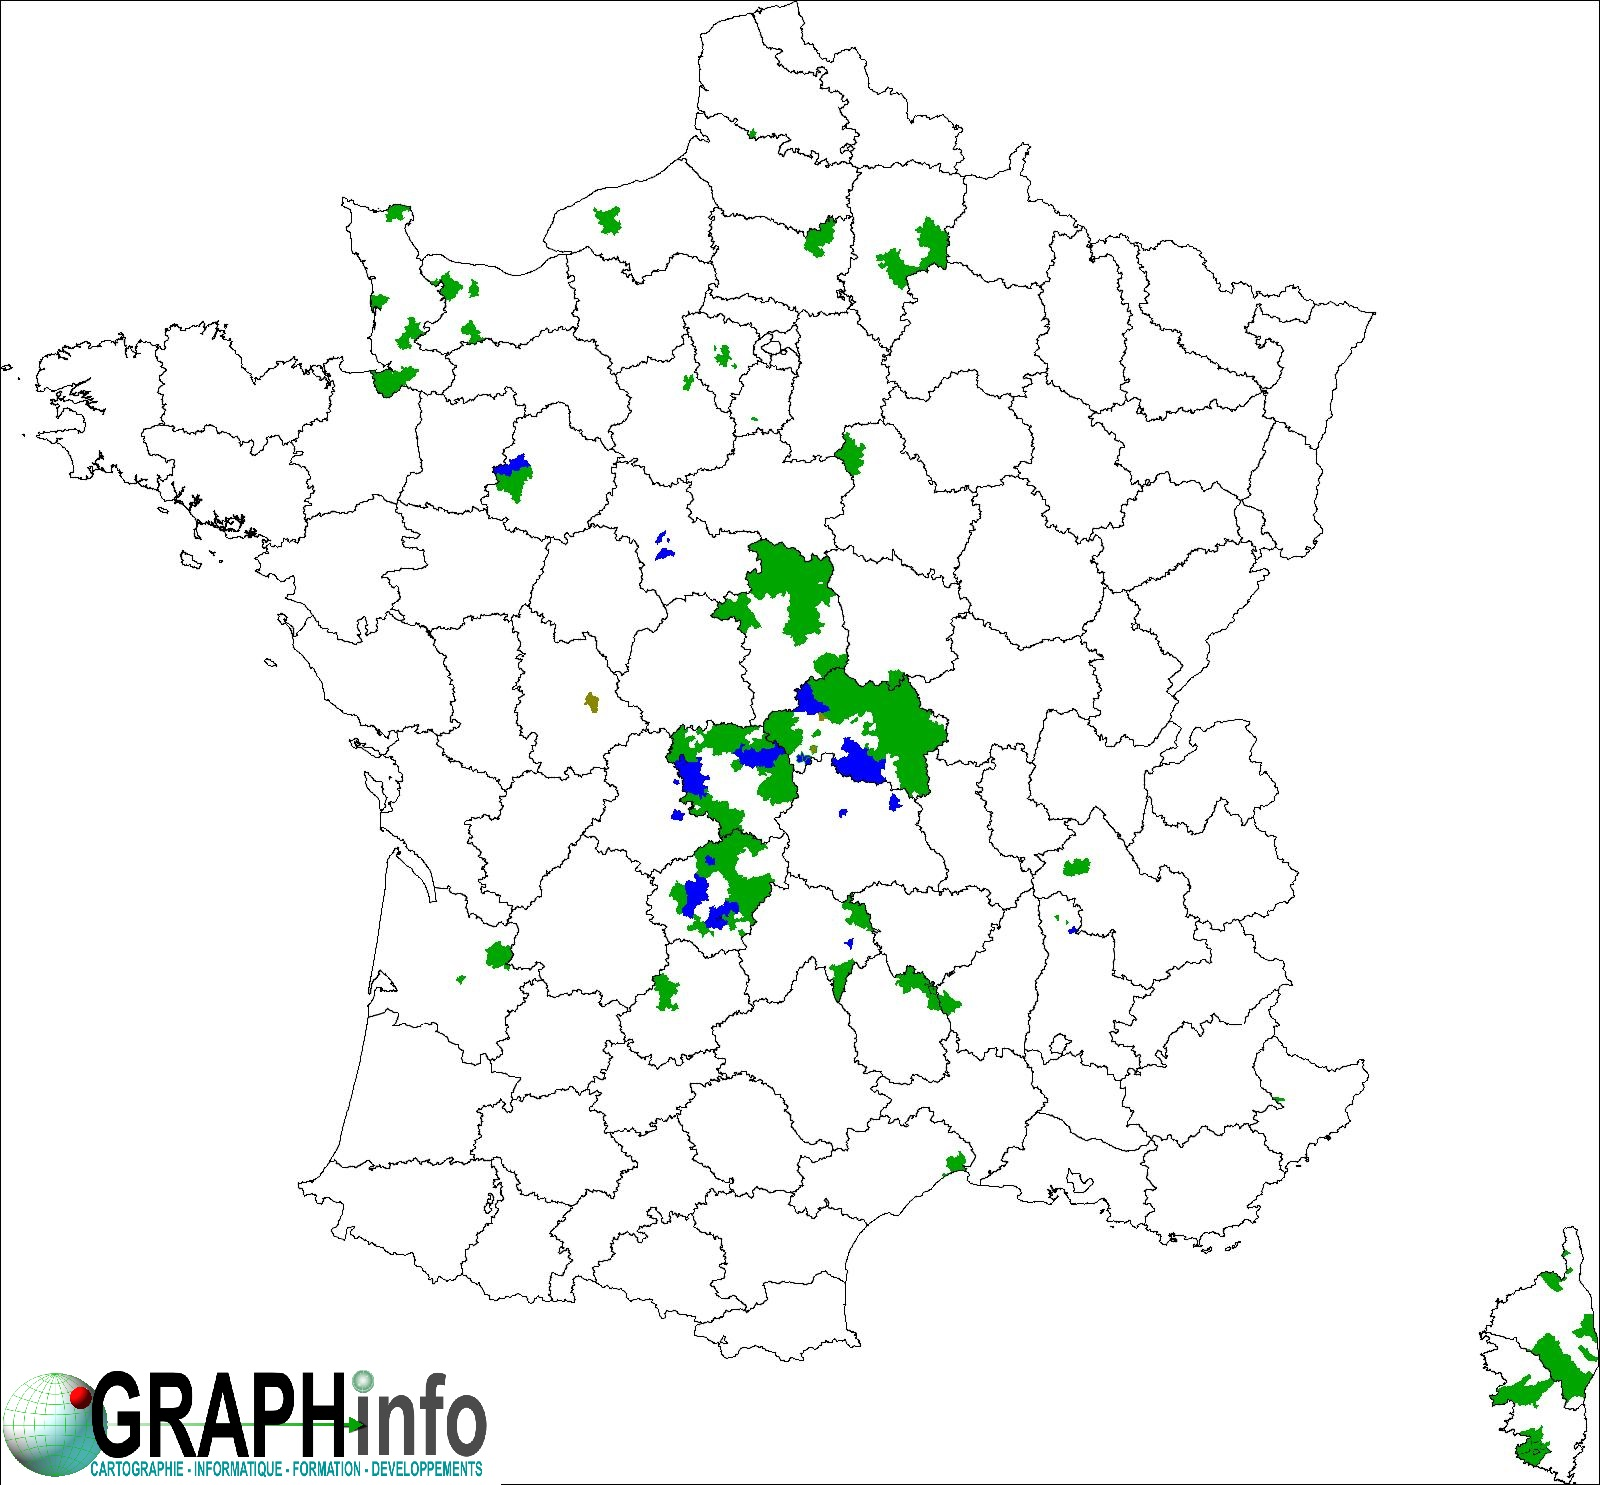 implantation logiciel spanc de grapginfo en france